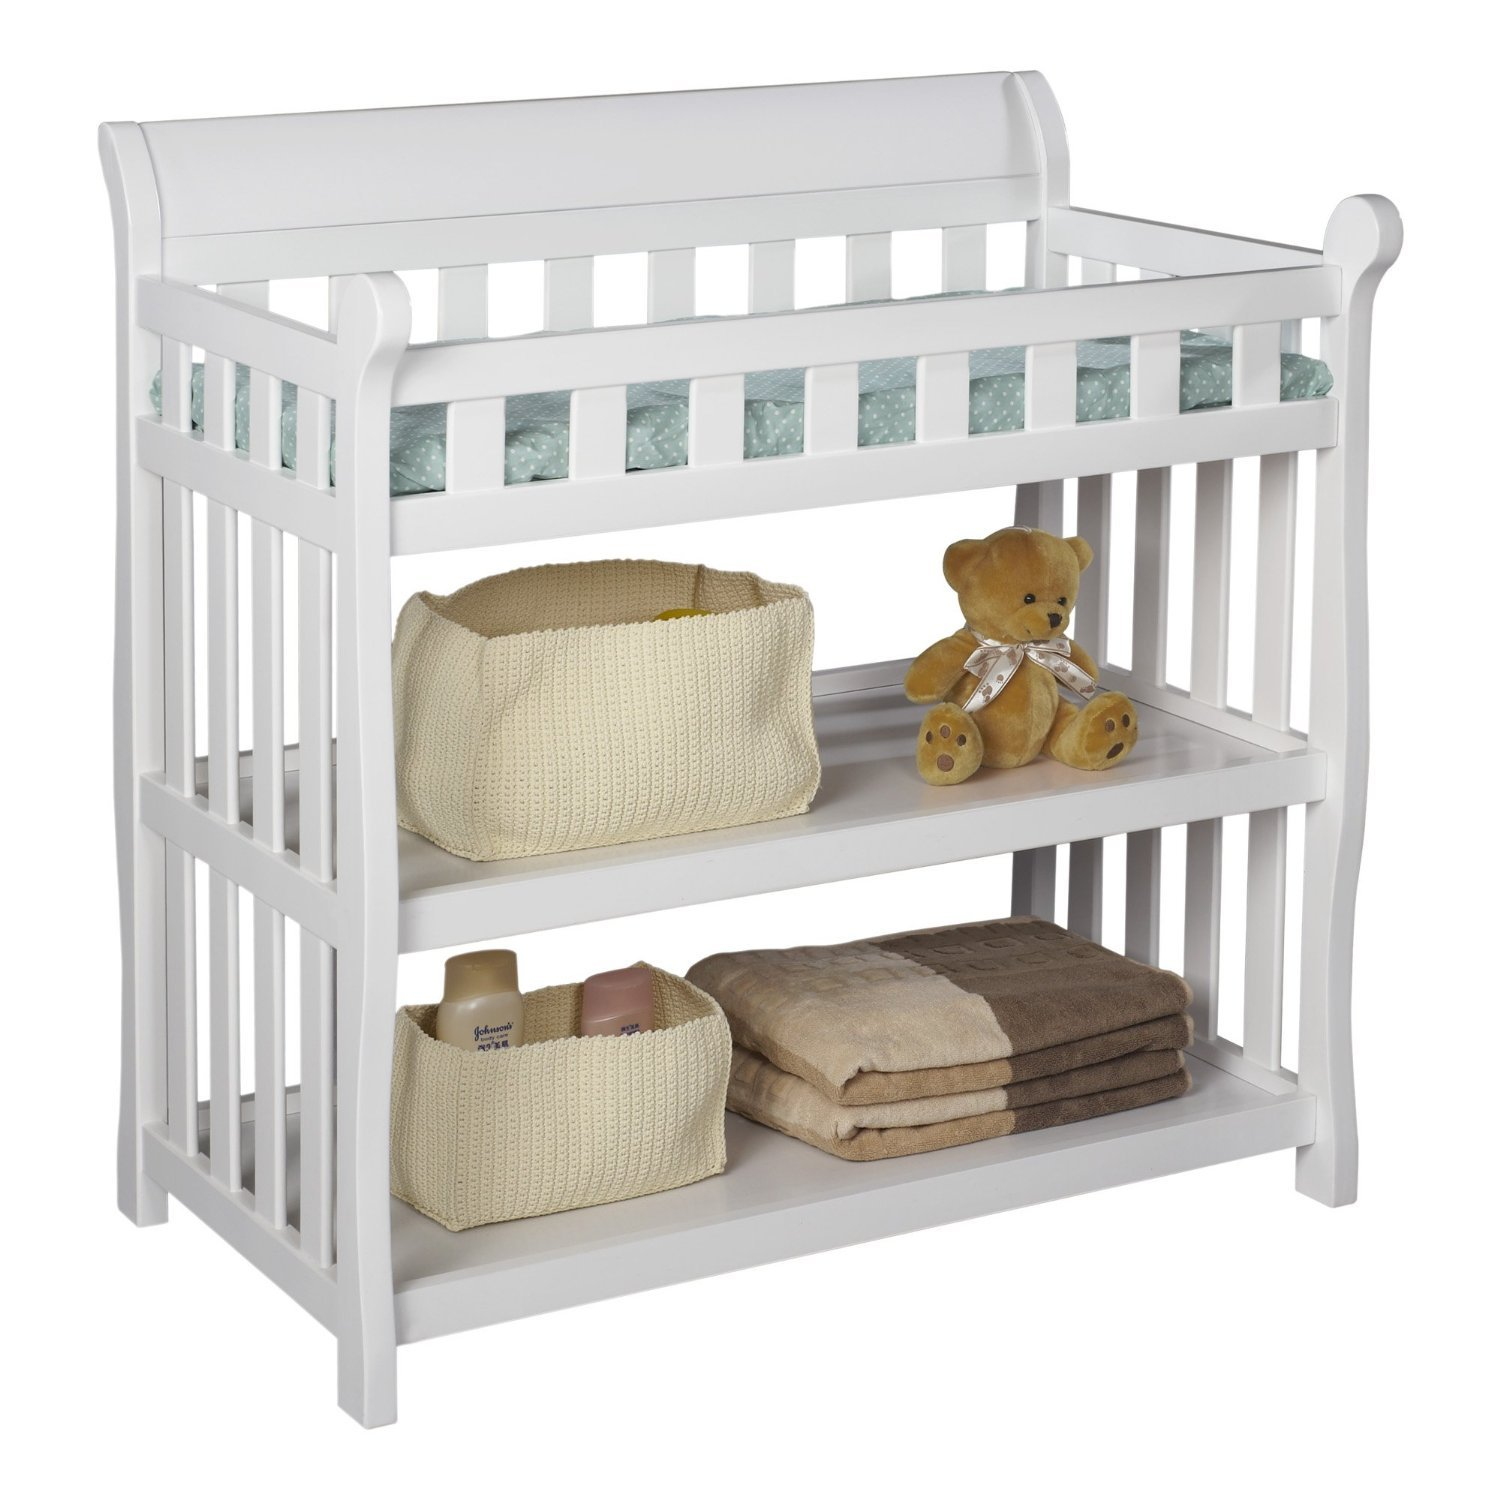 Premium Changing Table Baby Furniture for Diaper Change in Delta Modern White Solid Wood Design